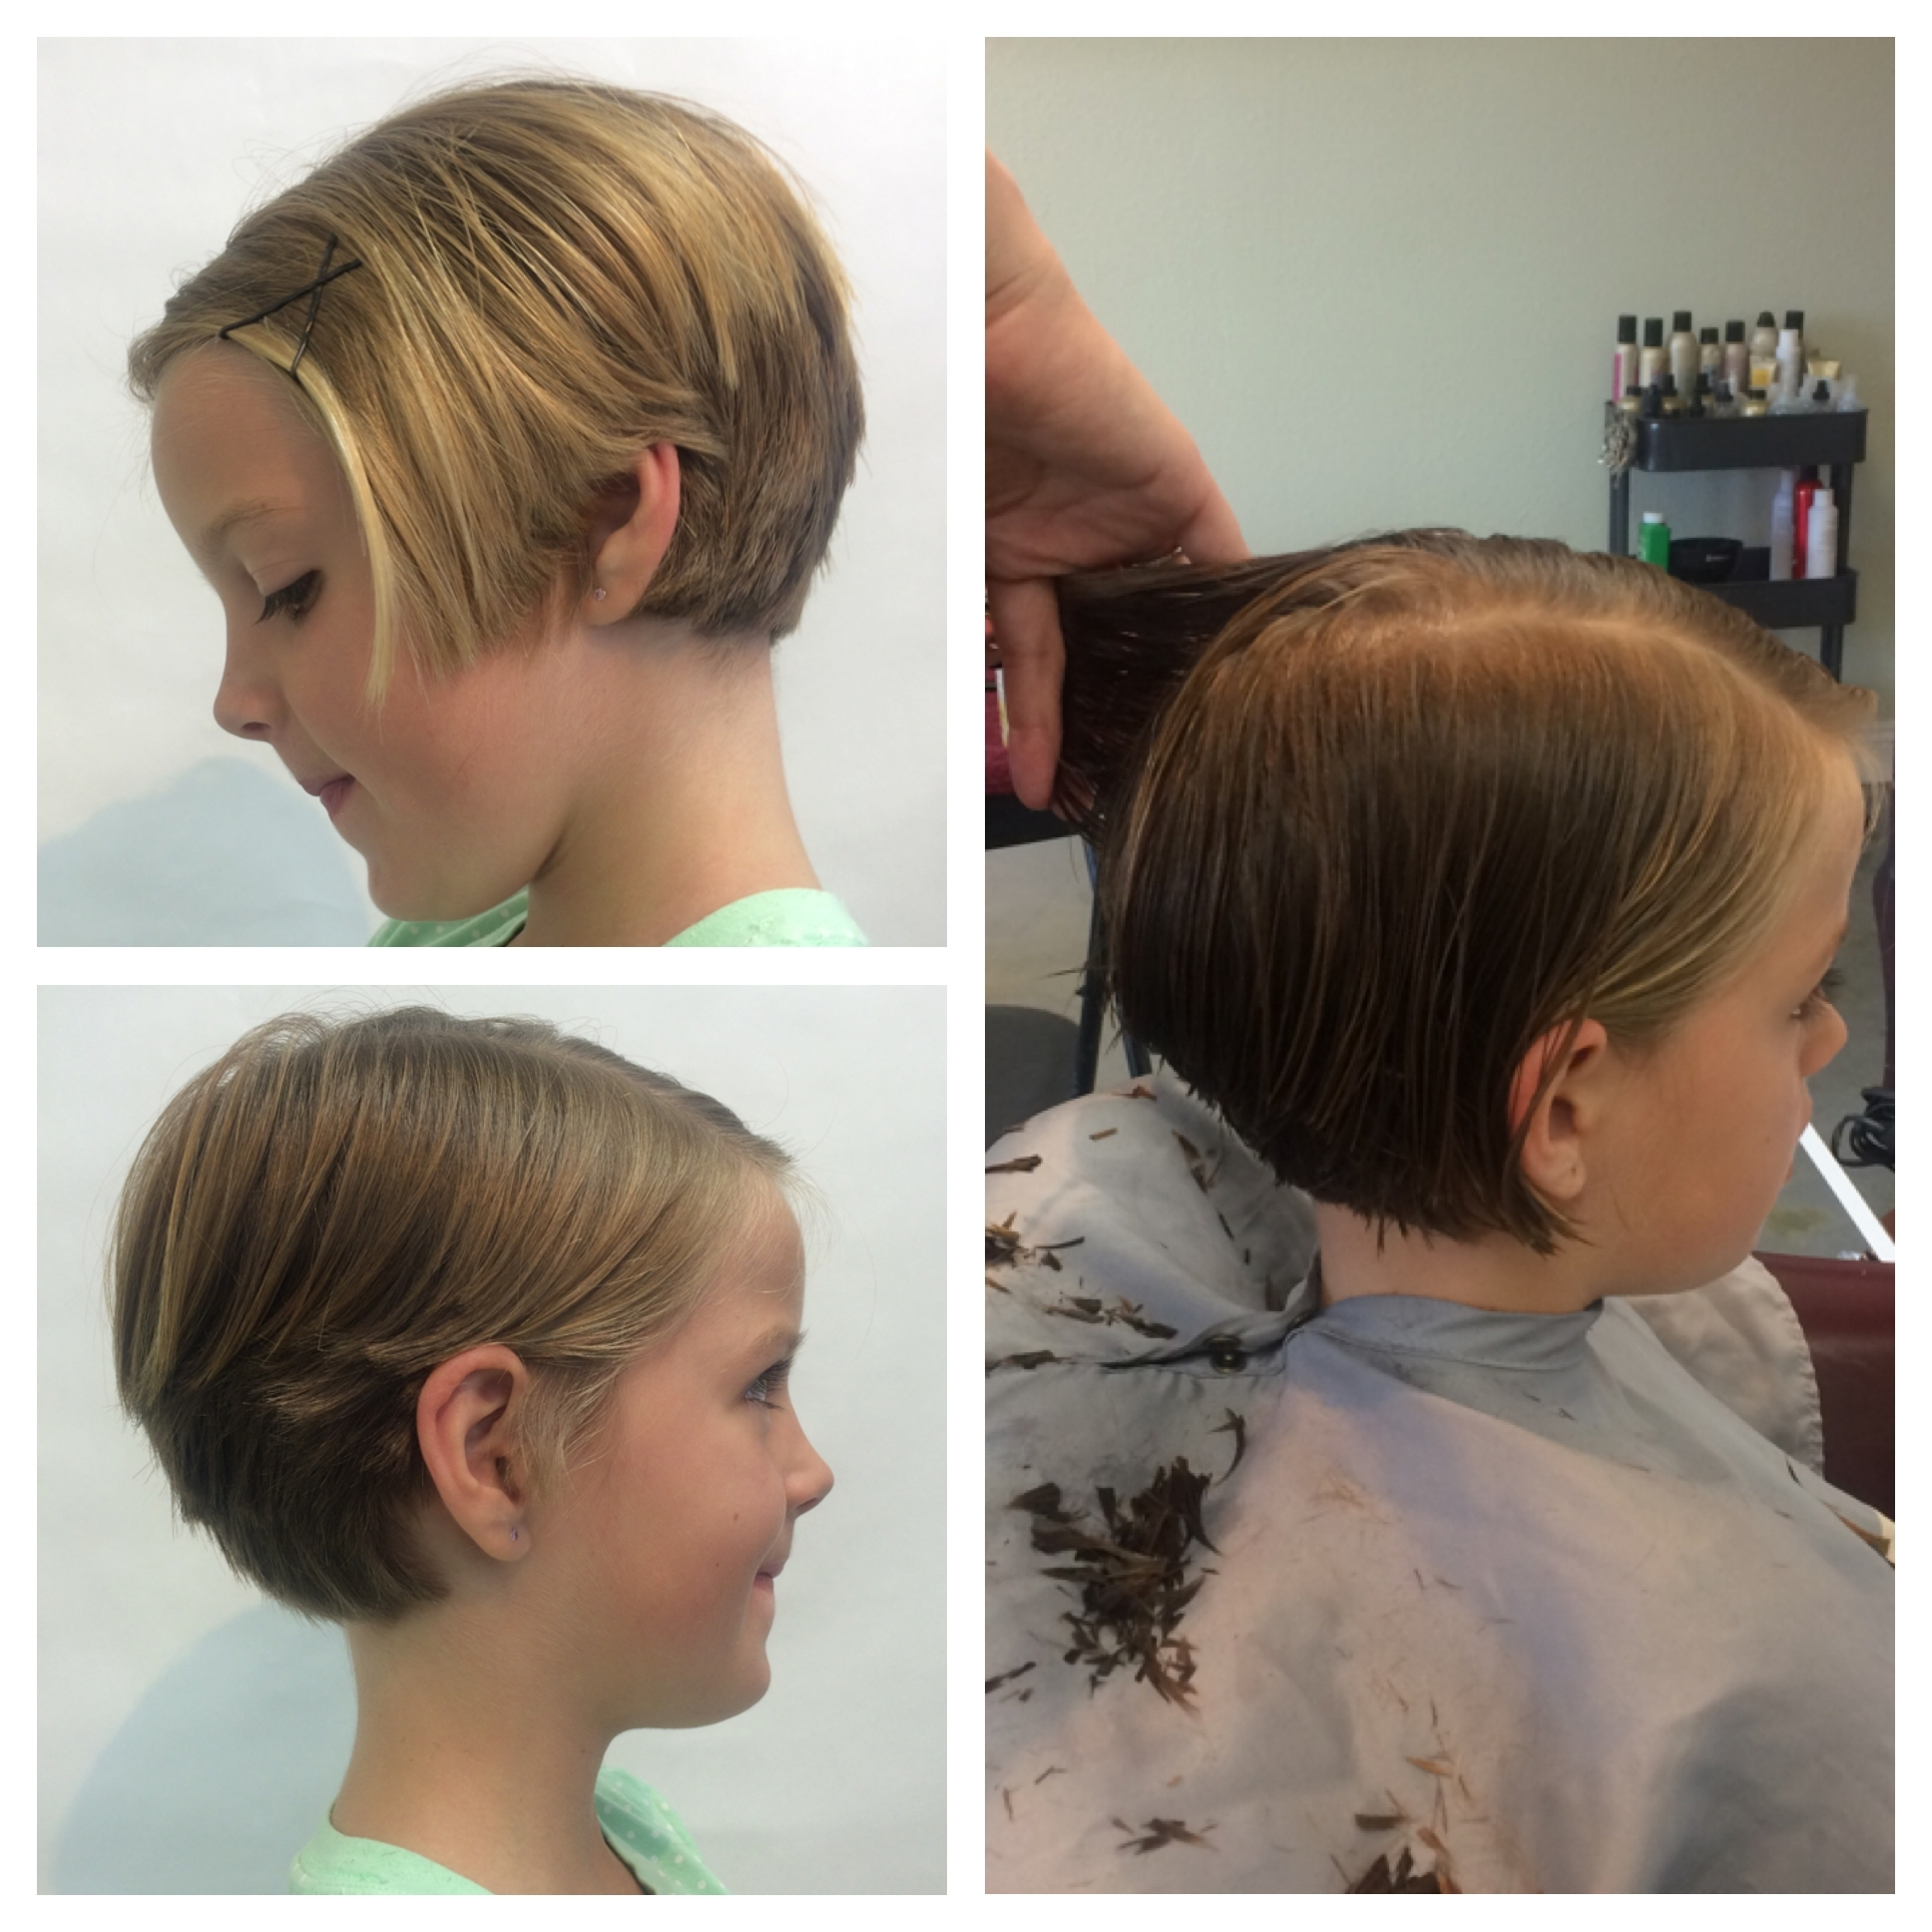 Child Pixie Hair Cut Girls Pixie Hairstyle Cute Short Hair Intended For 2018 Girls Pixie Hairstyles (View 3 of 15)